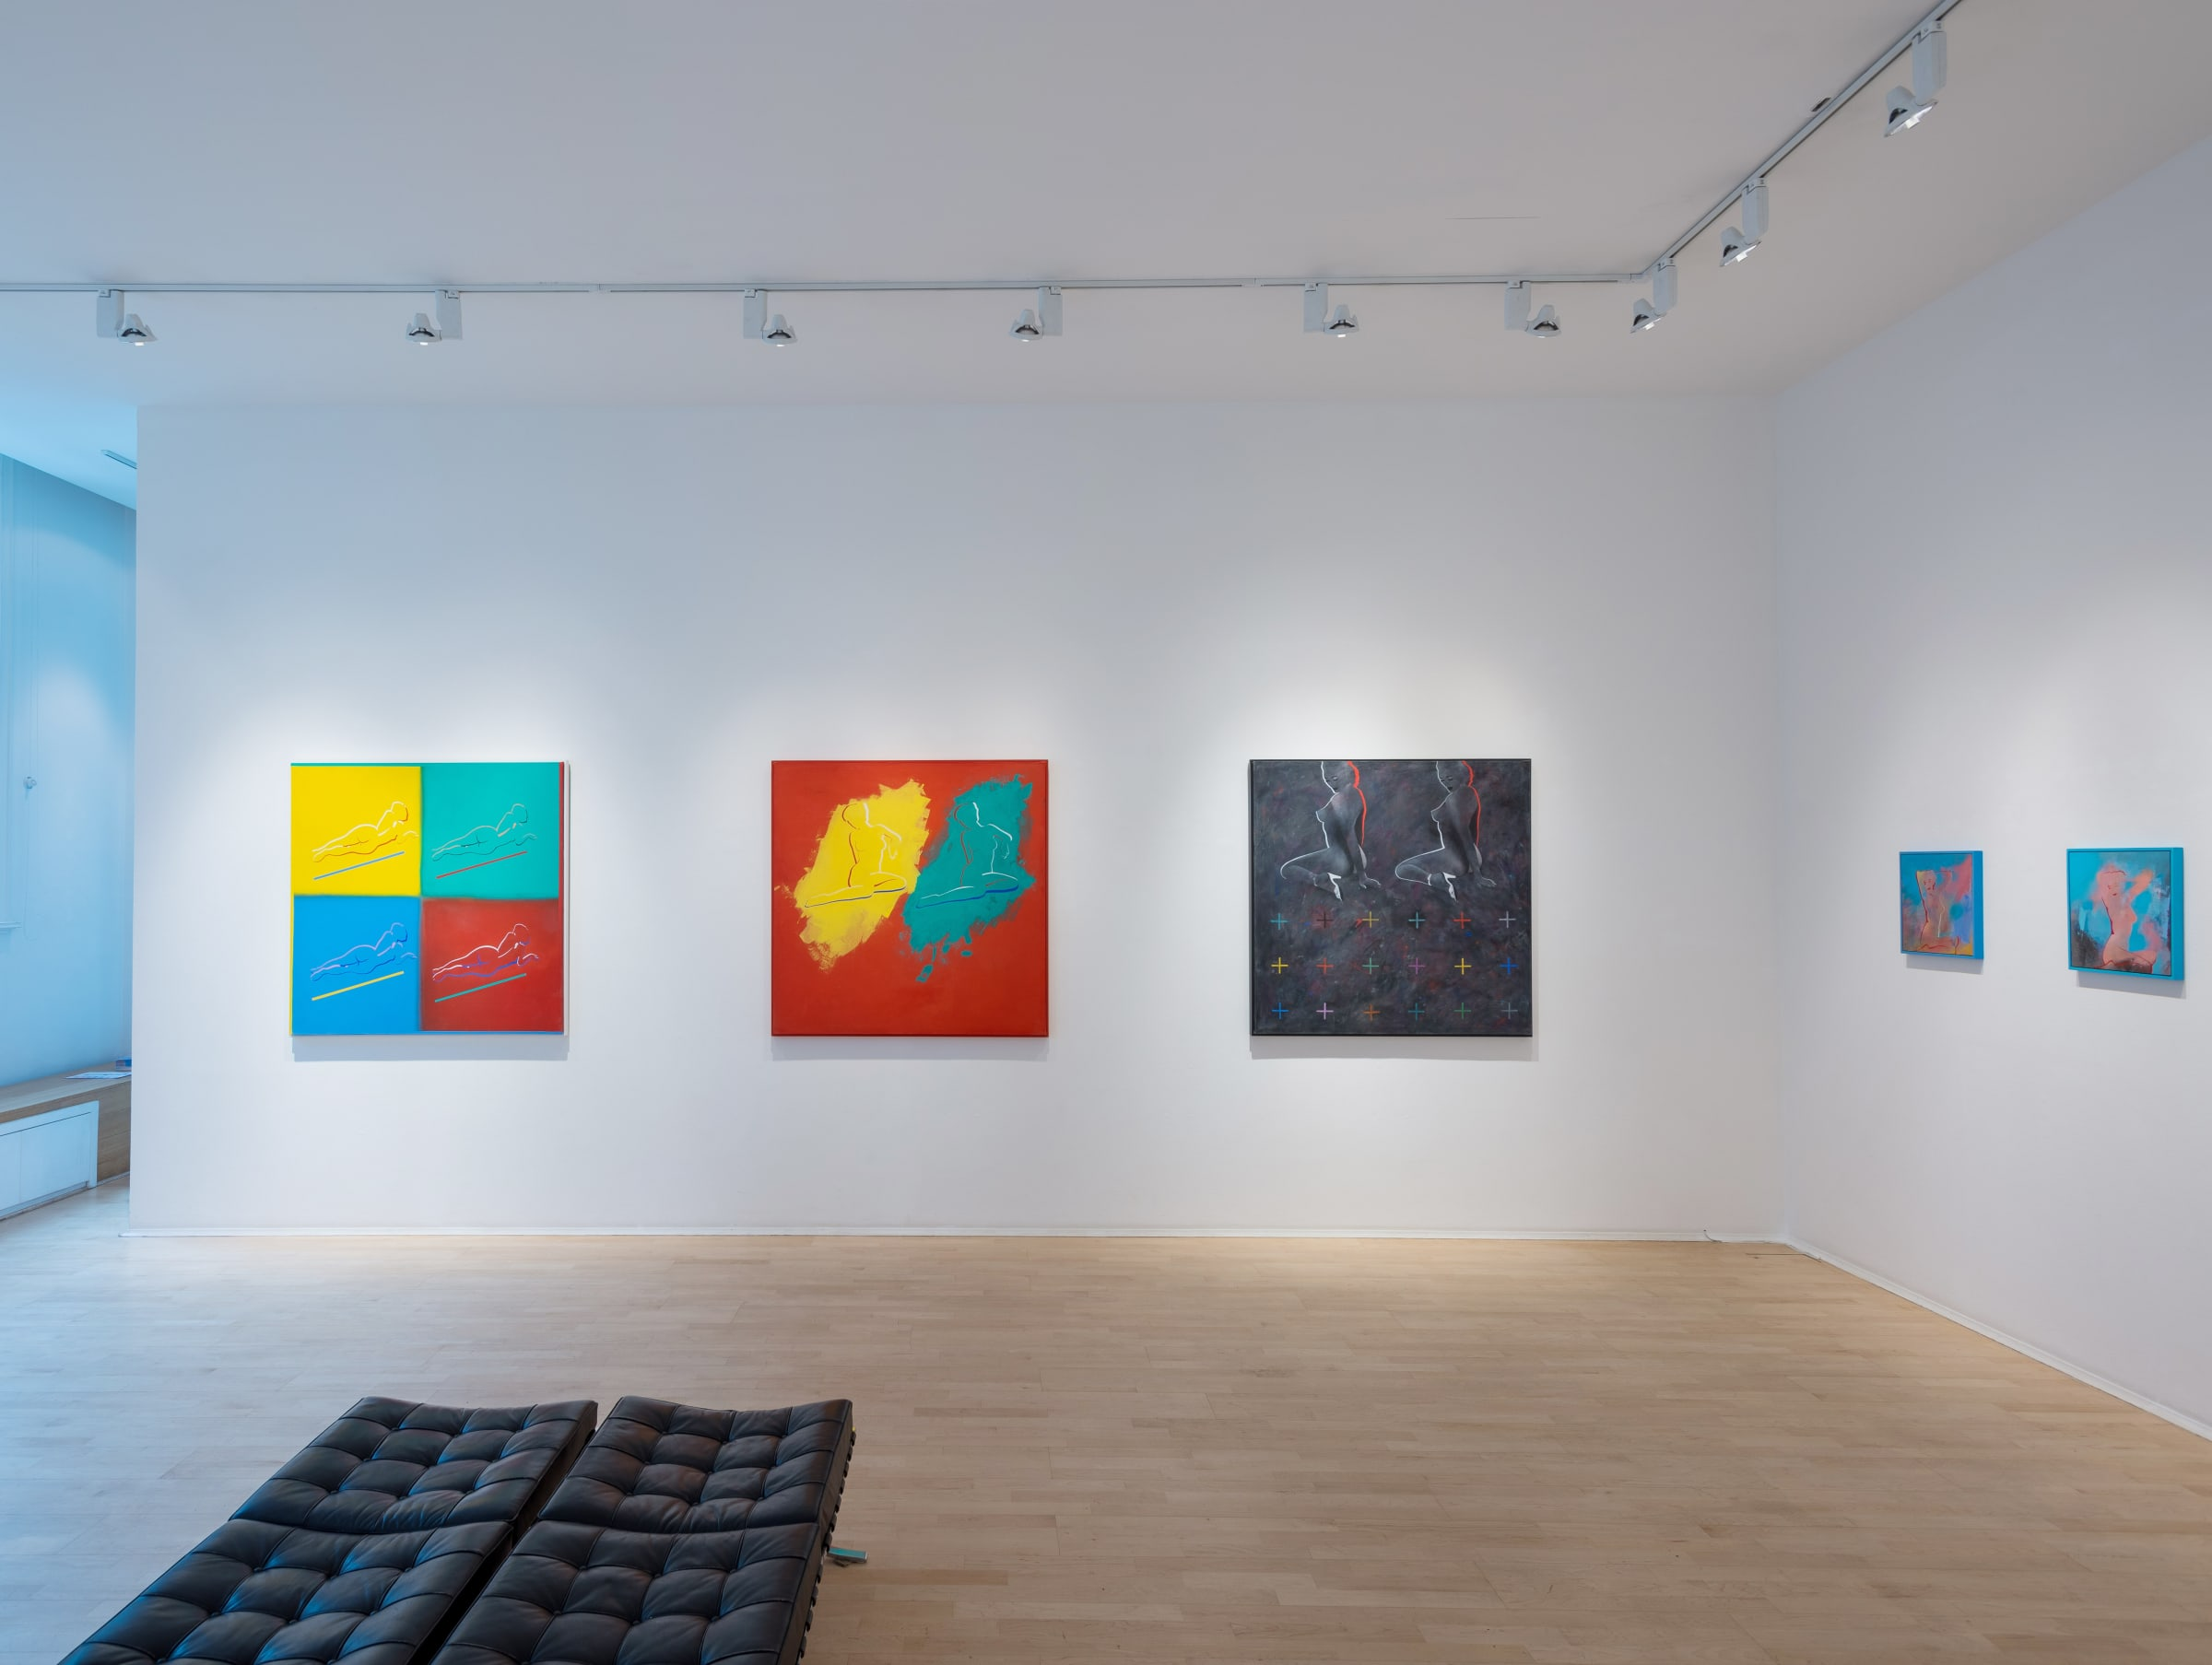 """<span class=""""link fancybox-details-link""""><a href=""""/exhibitions/318/works/image_standalone1622/"""">View Detail Page</a></span><p><strong>ANTONY DONALDSON</strong>   OF MEMORY OF OBLIVION   09 SEP - 09 OCT 2015   Installation view</p>"""